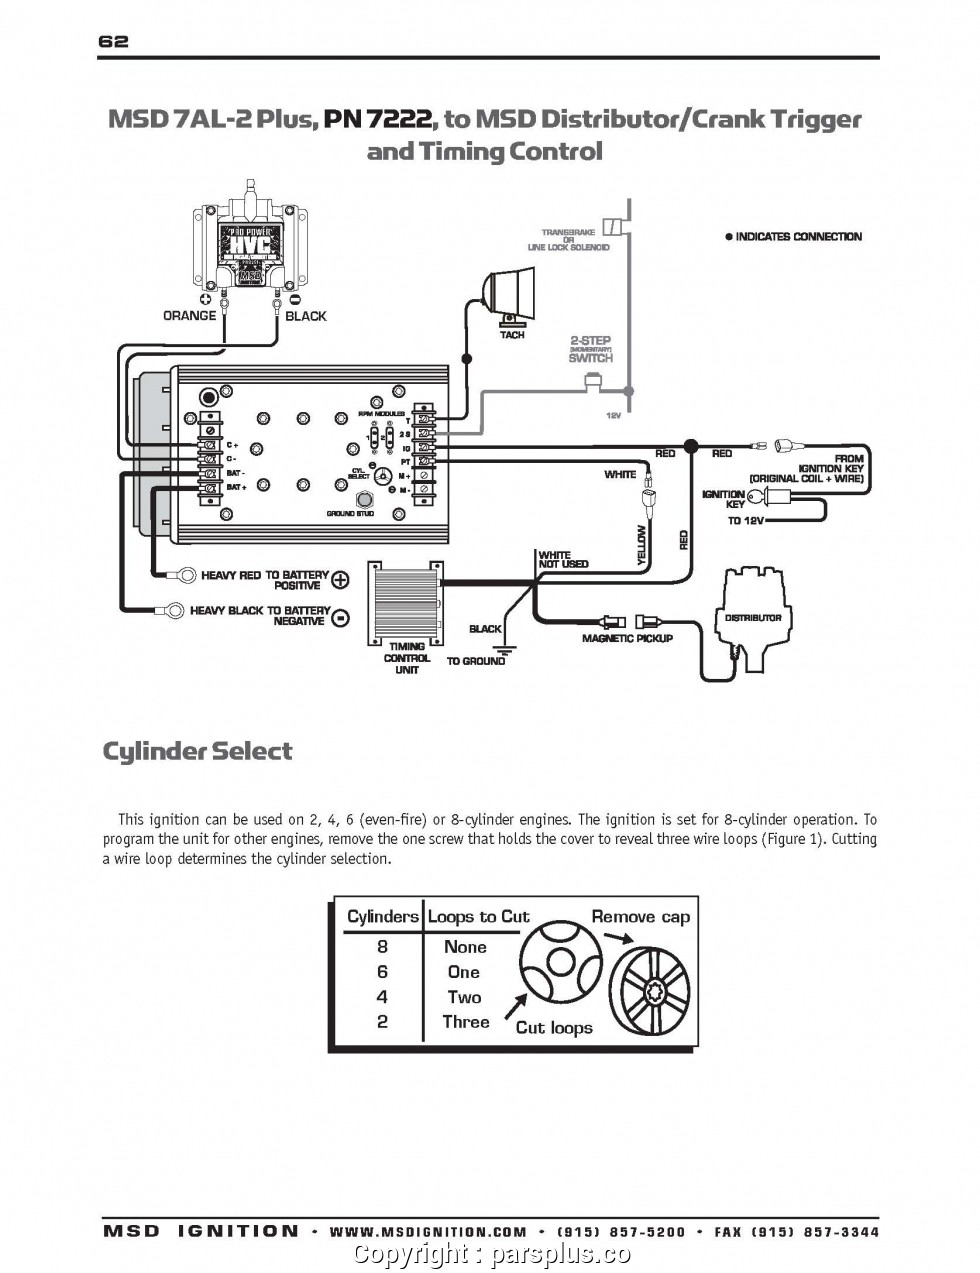 ignition switch wiring diagram on ford msd 6a ignition wiring rh sellfie co